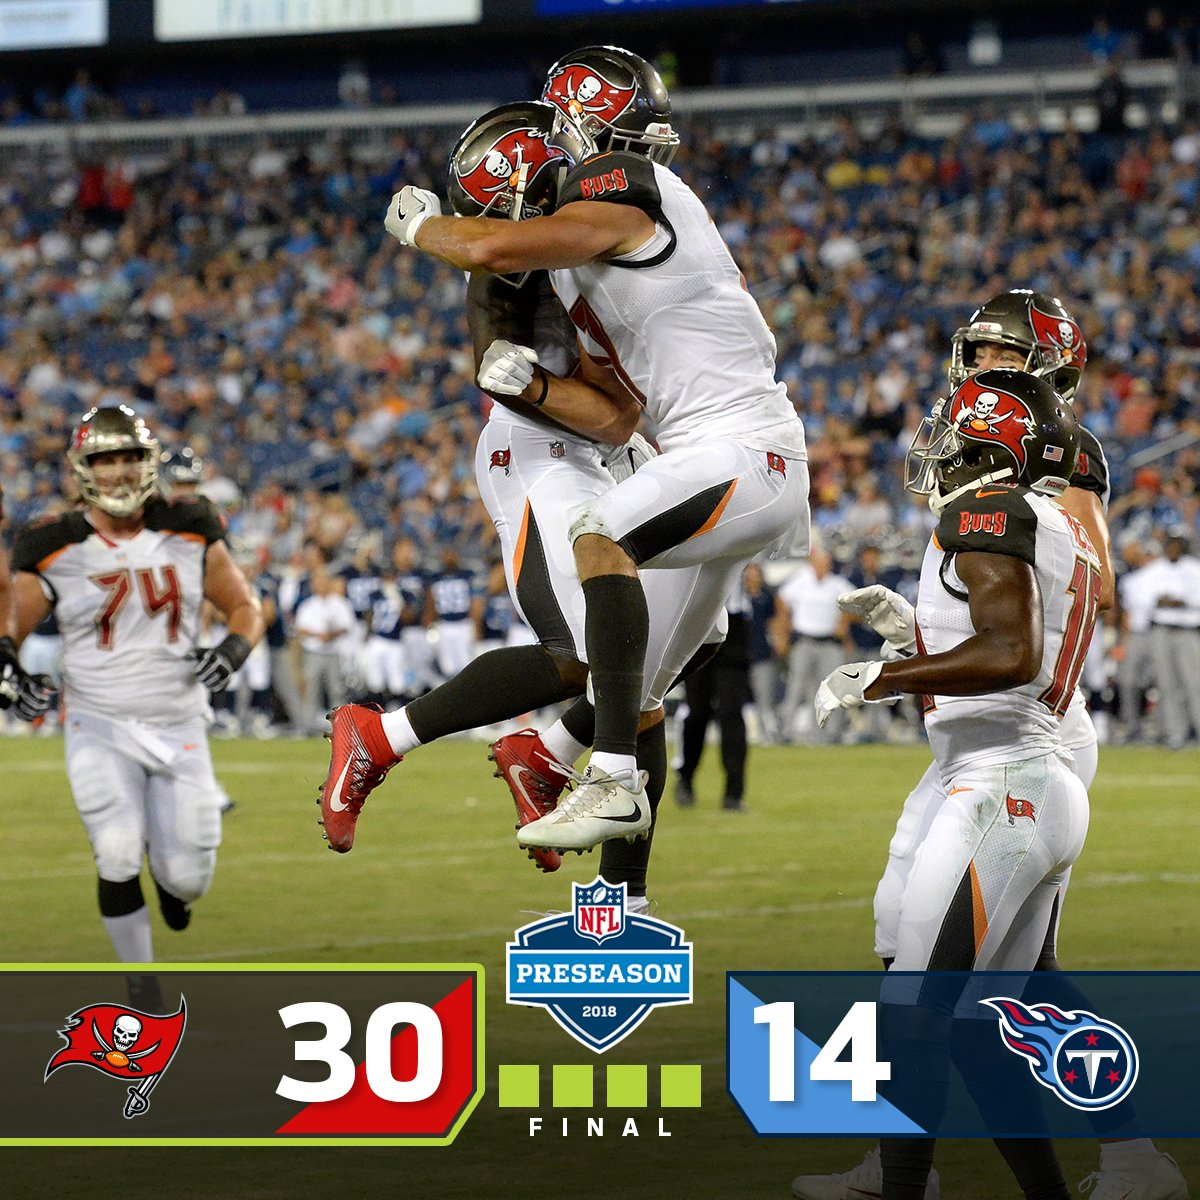 FINAL: The @Buccaneers WIN in Nashville! #TBvsTEN #NFLPreseason https://t.co/Fq797zlMdE